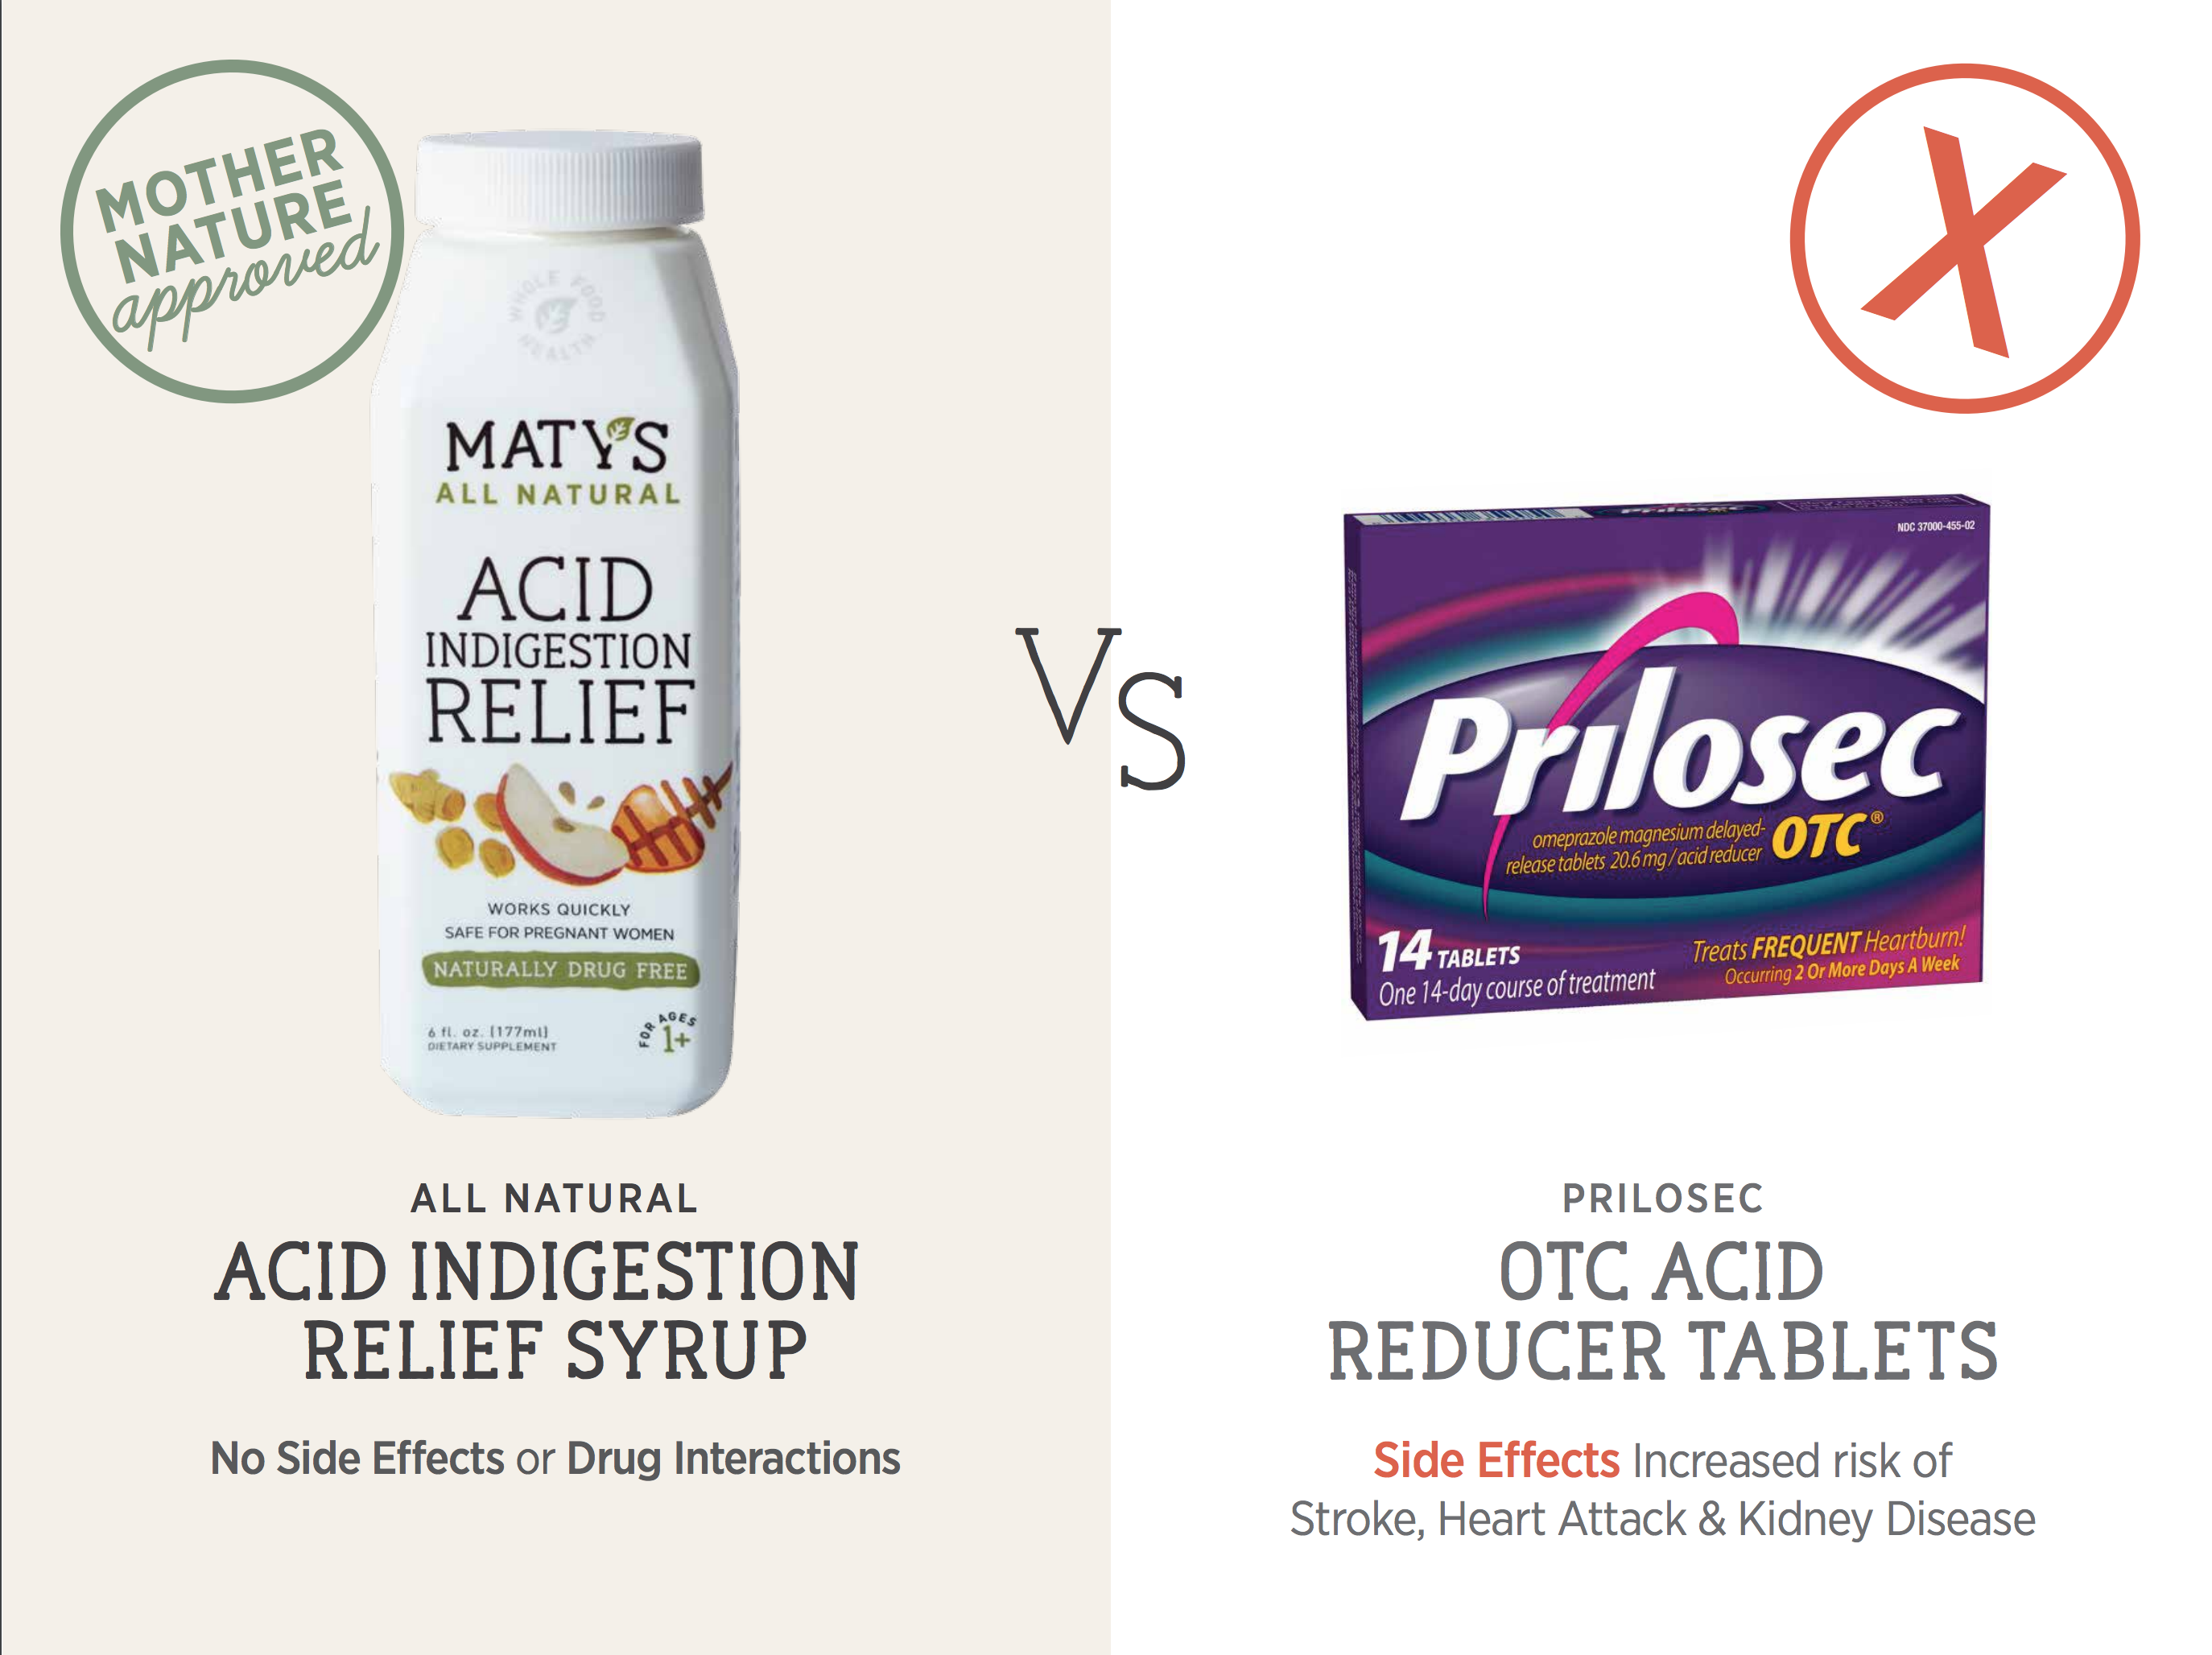 All Natural replacement for Prilosec